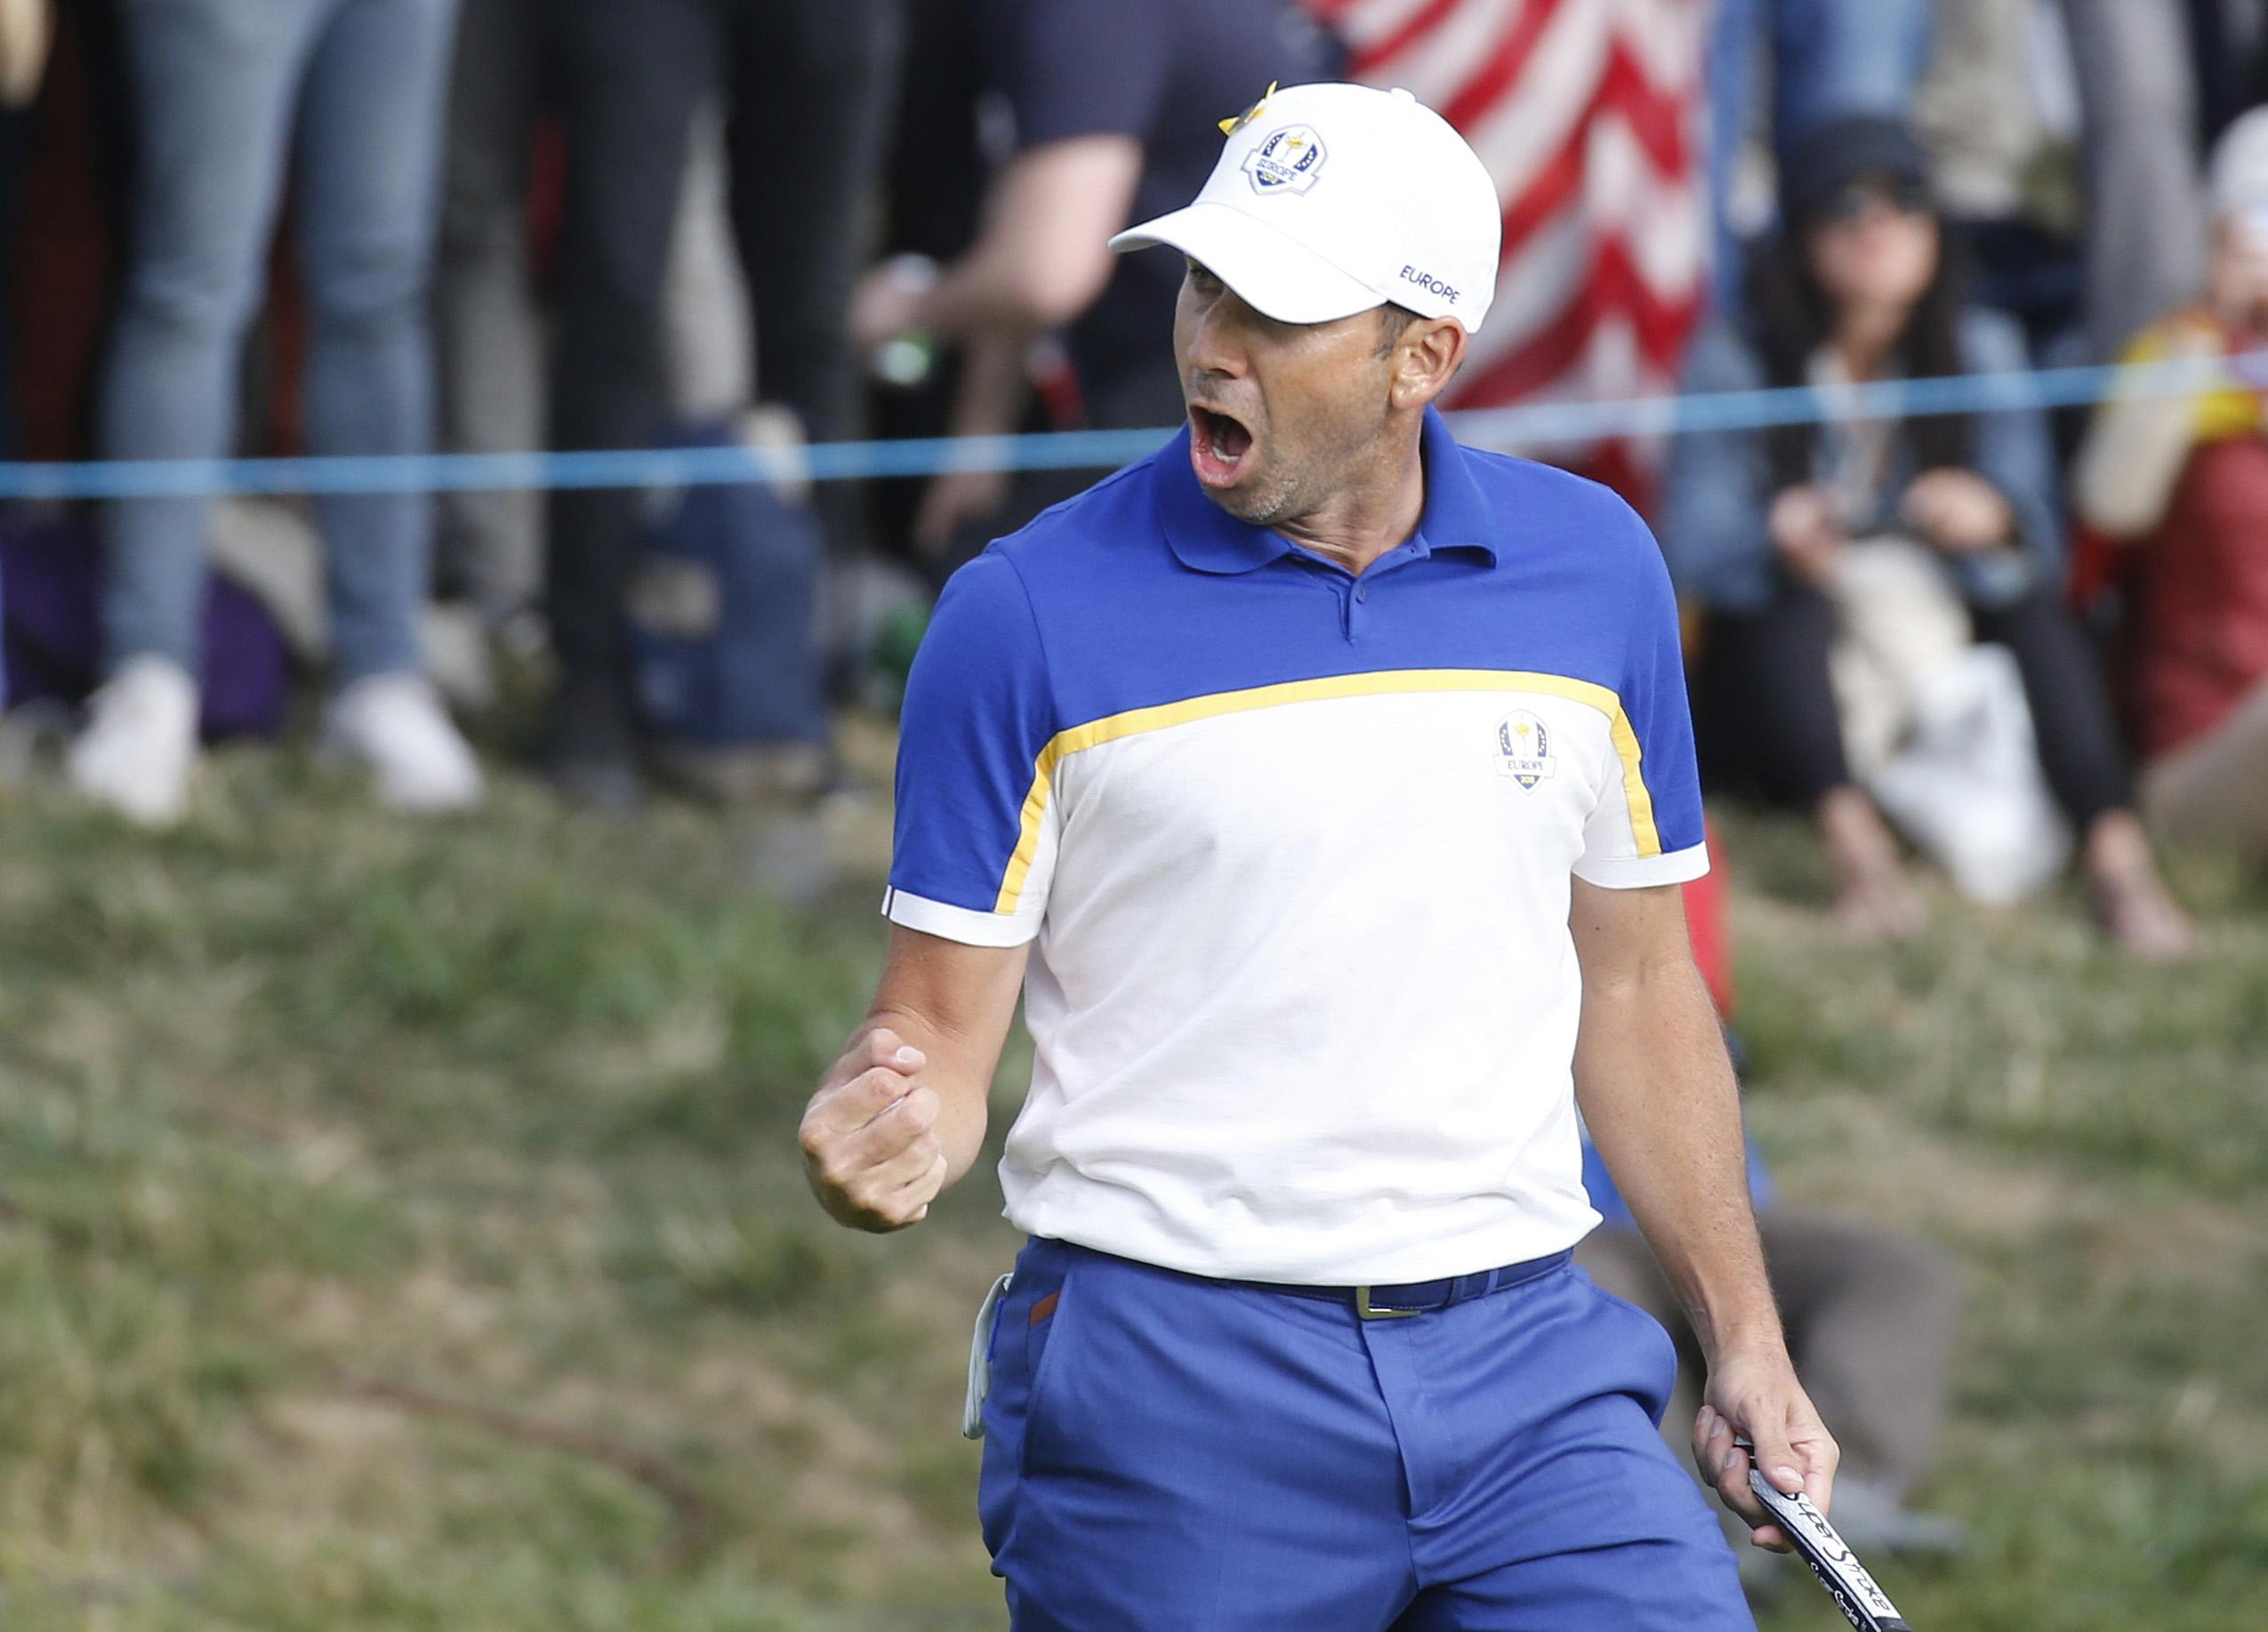 Sergio Garcia has set the record for the most points scored in Ryder Cup history